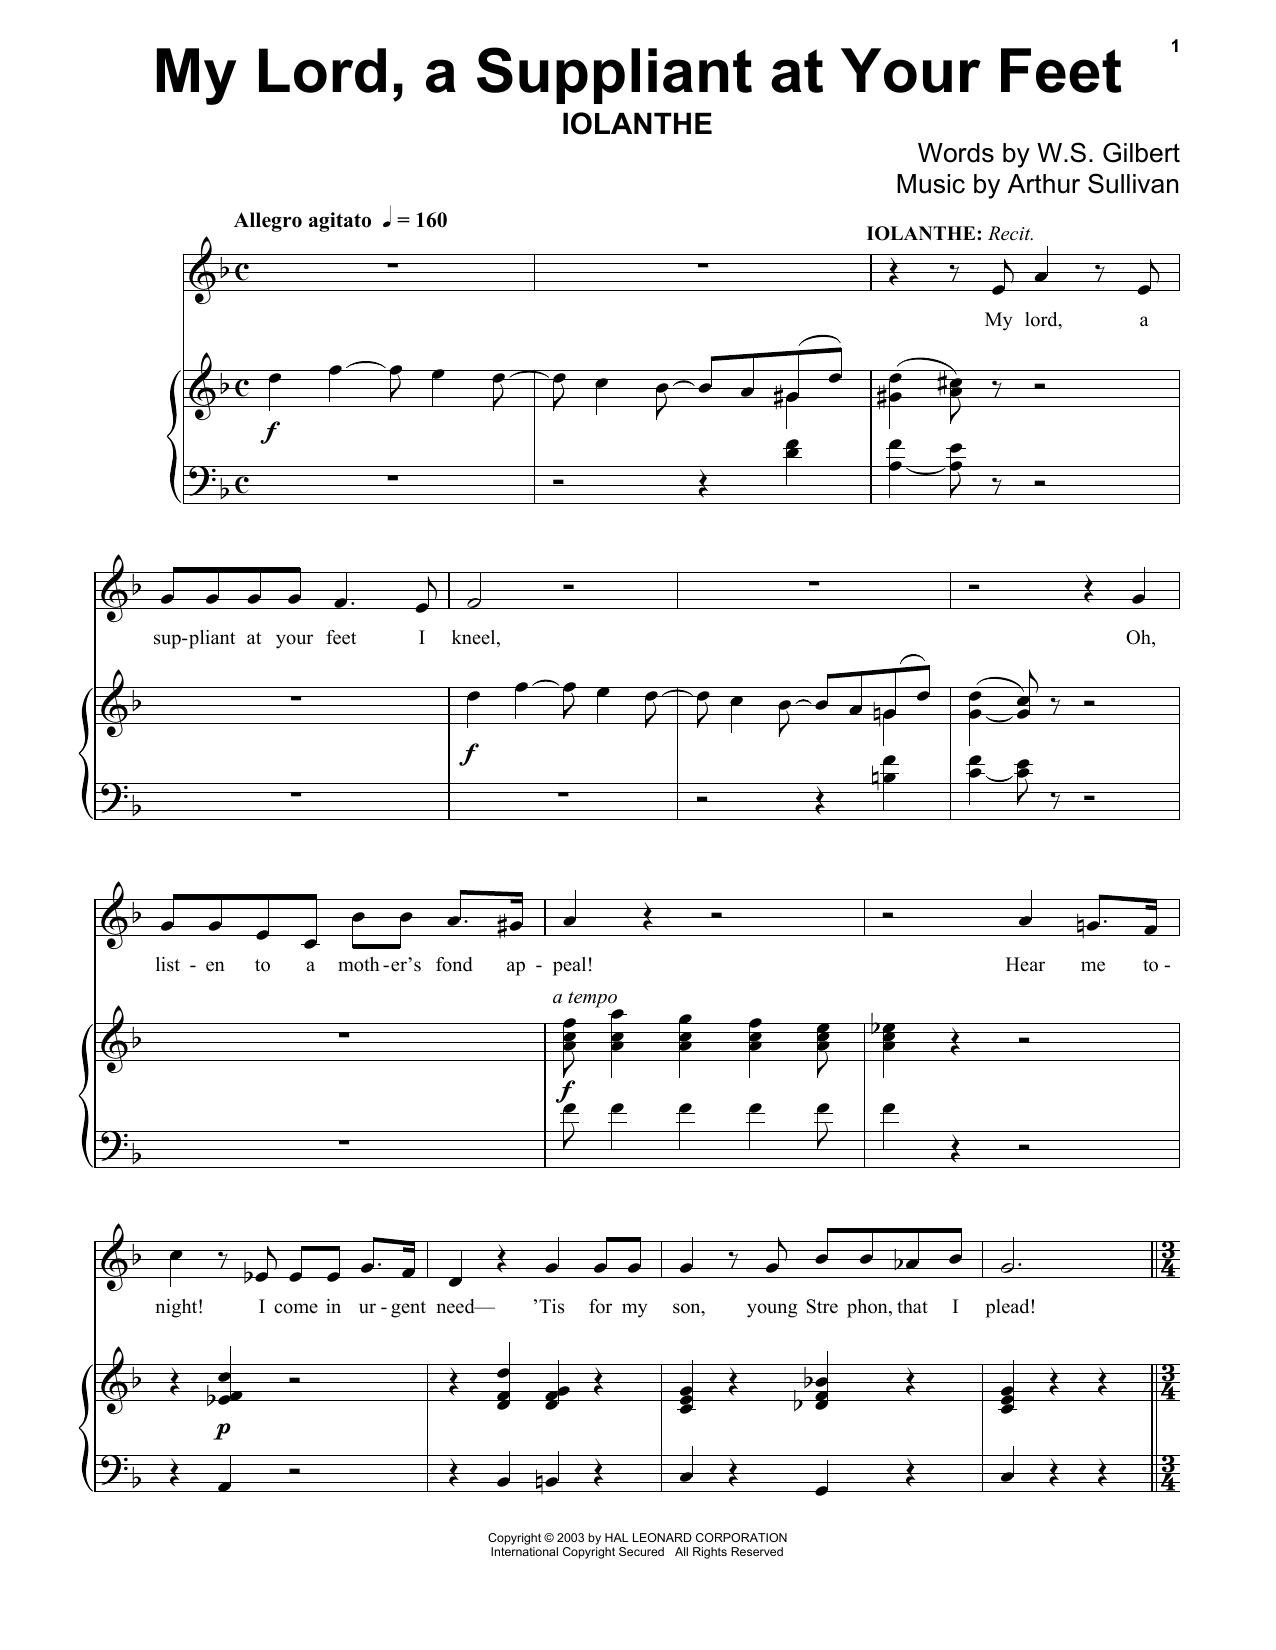 My Lord, A Suppliant At Your Feet Sheet Music